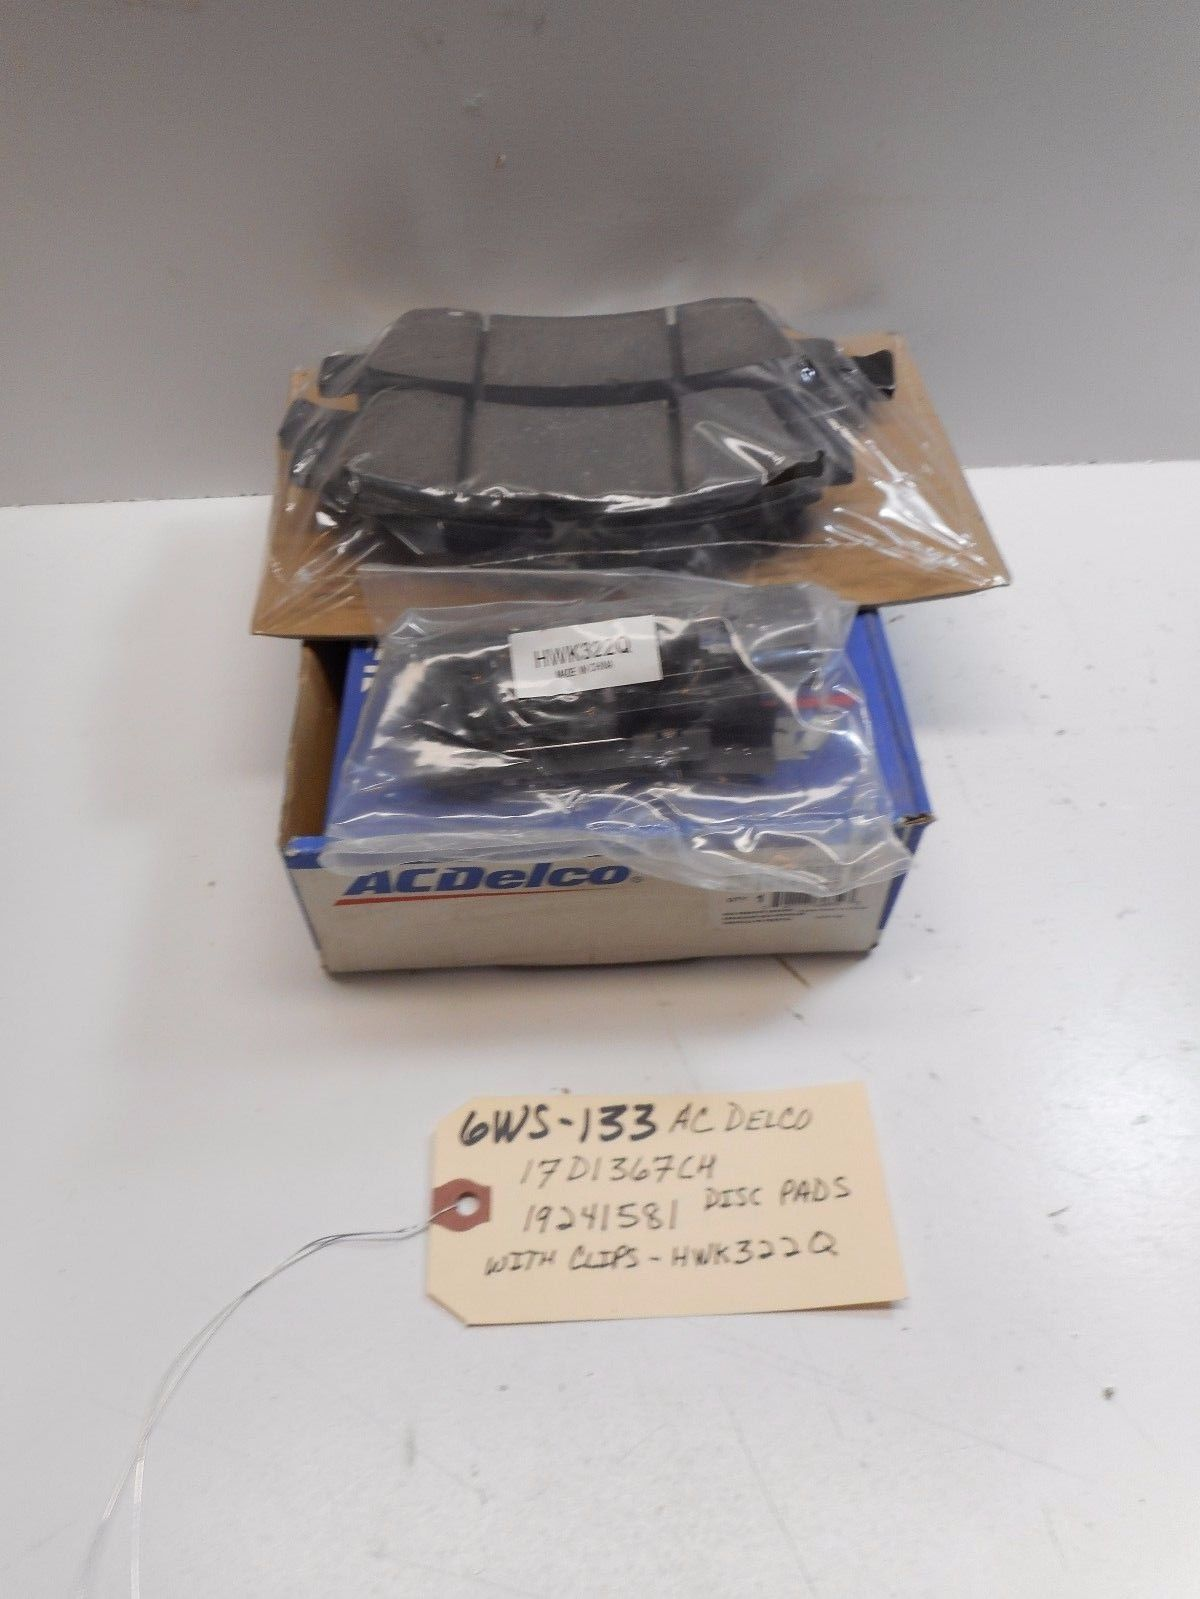 ACDELCO 17D1367CH GM 19241581 DISC PADS WITH CLIPS KWK322Q